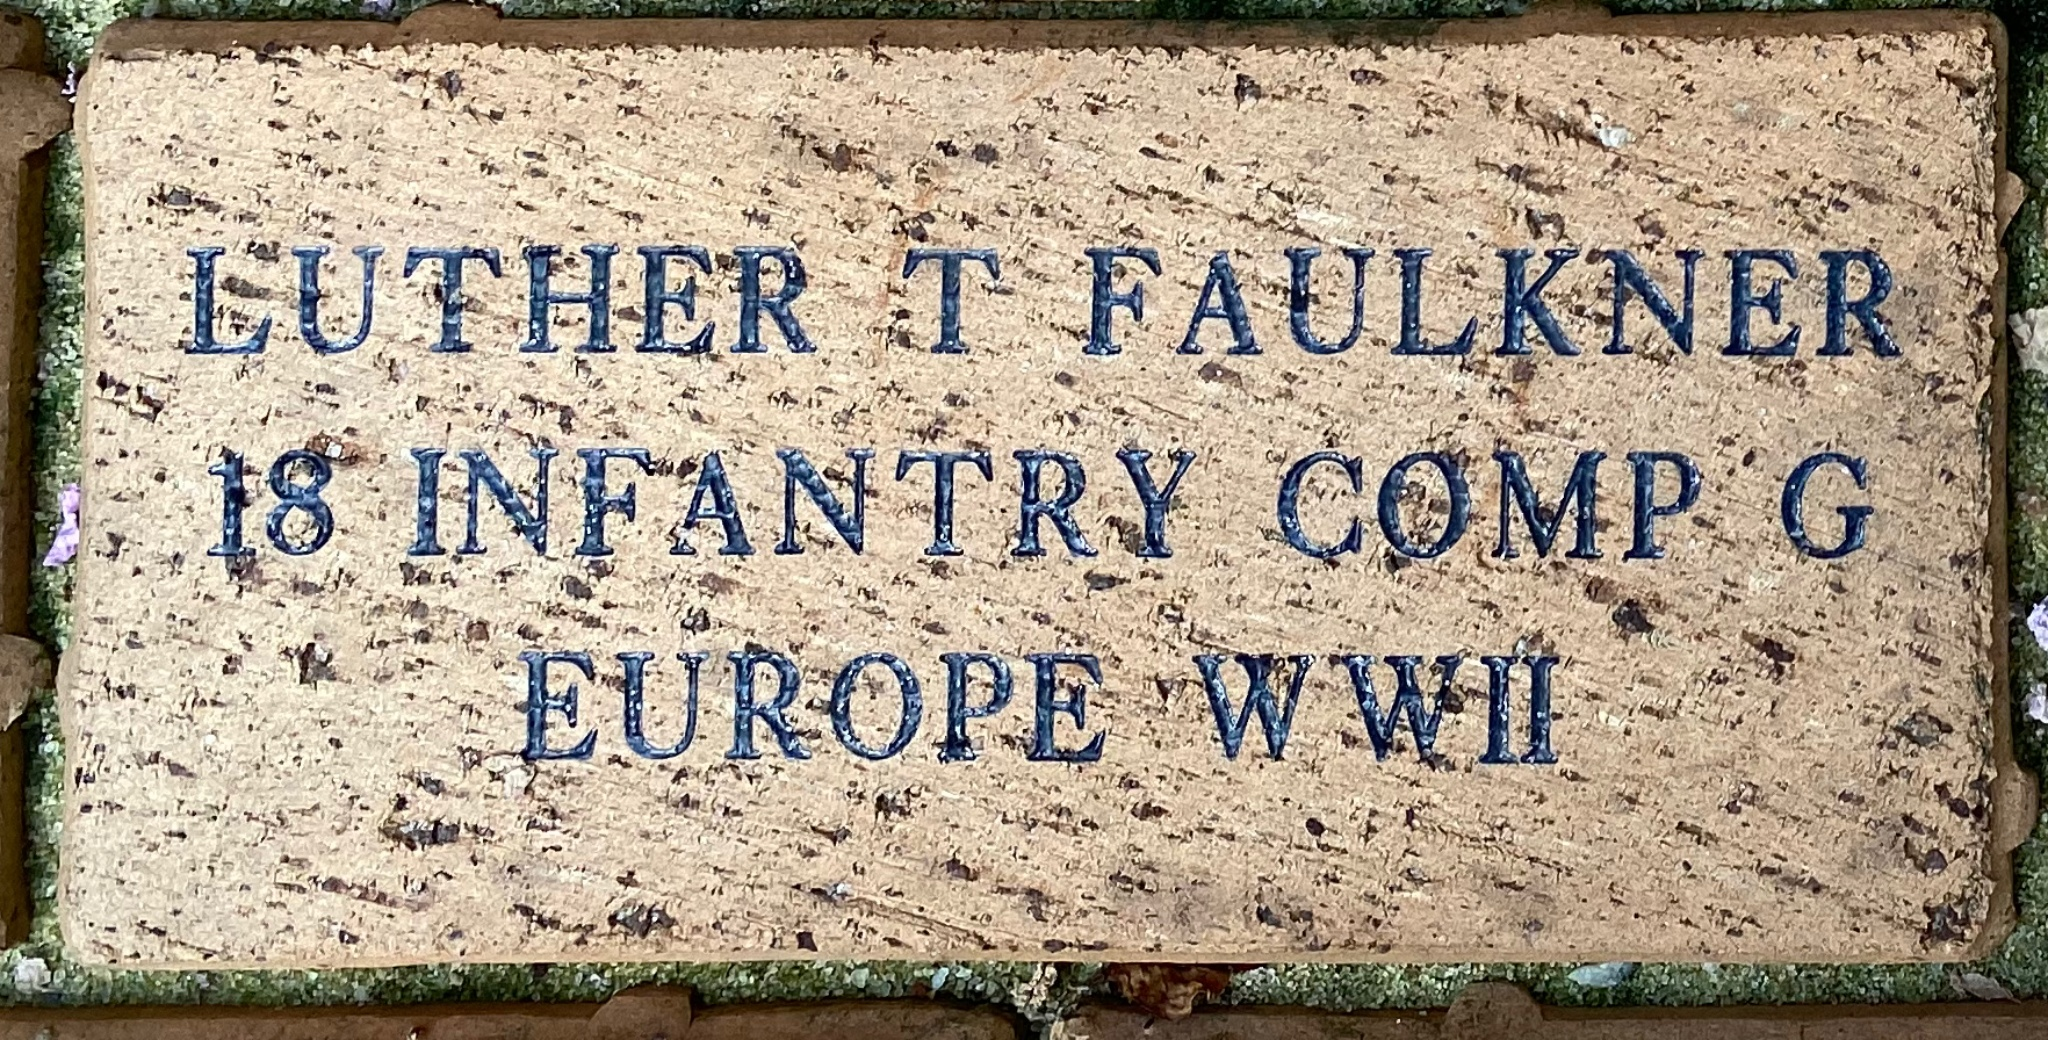 LUTHER T FAULKNER 18 INFANTRY COMP G WWII